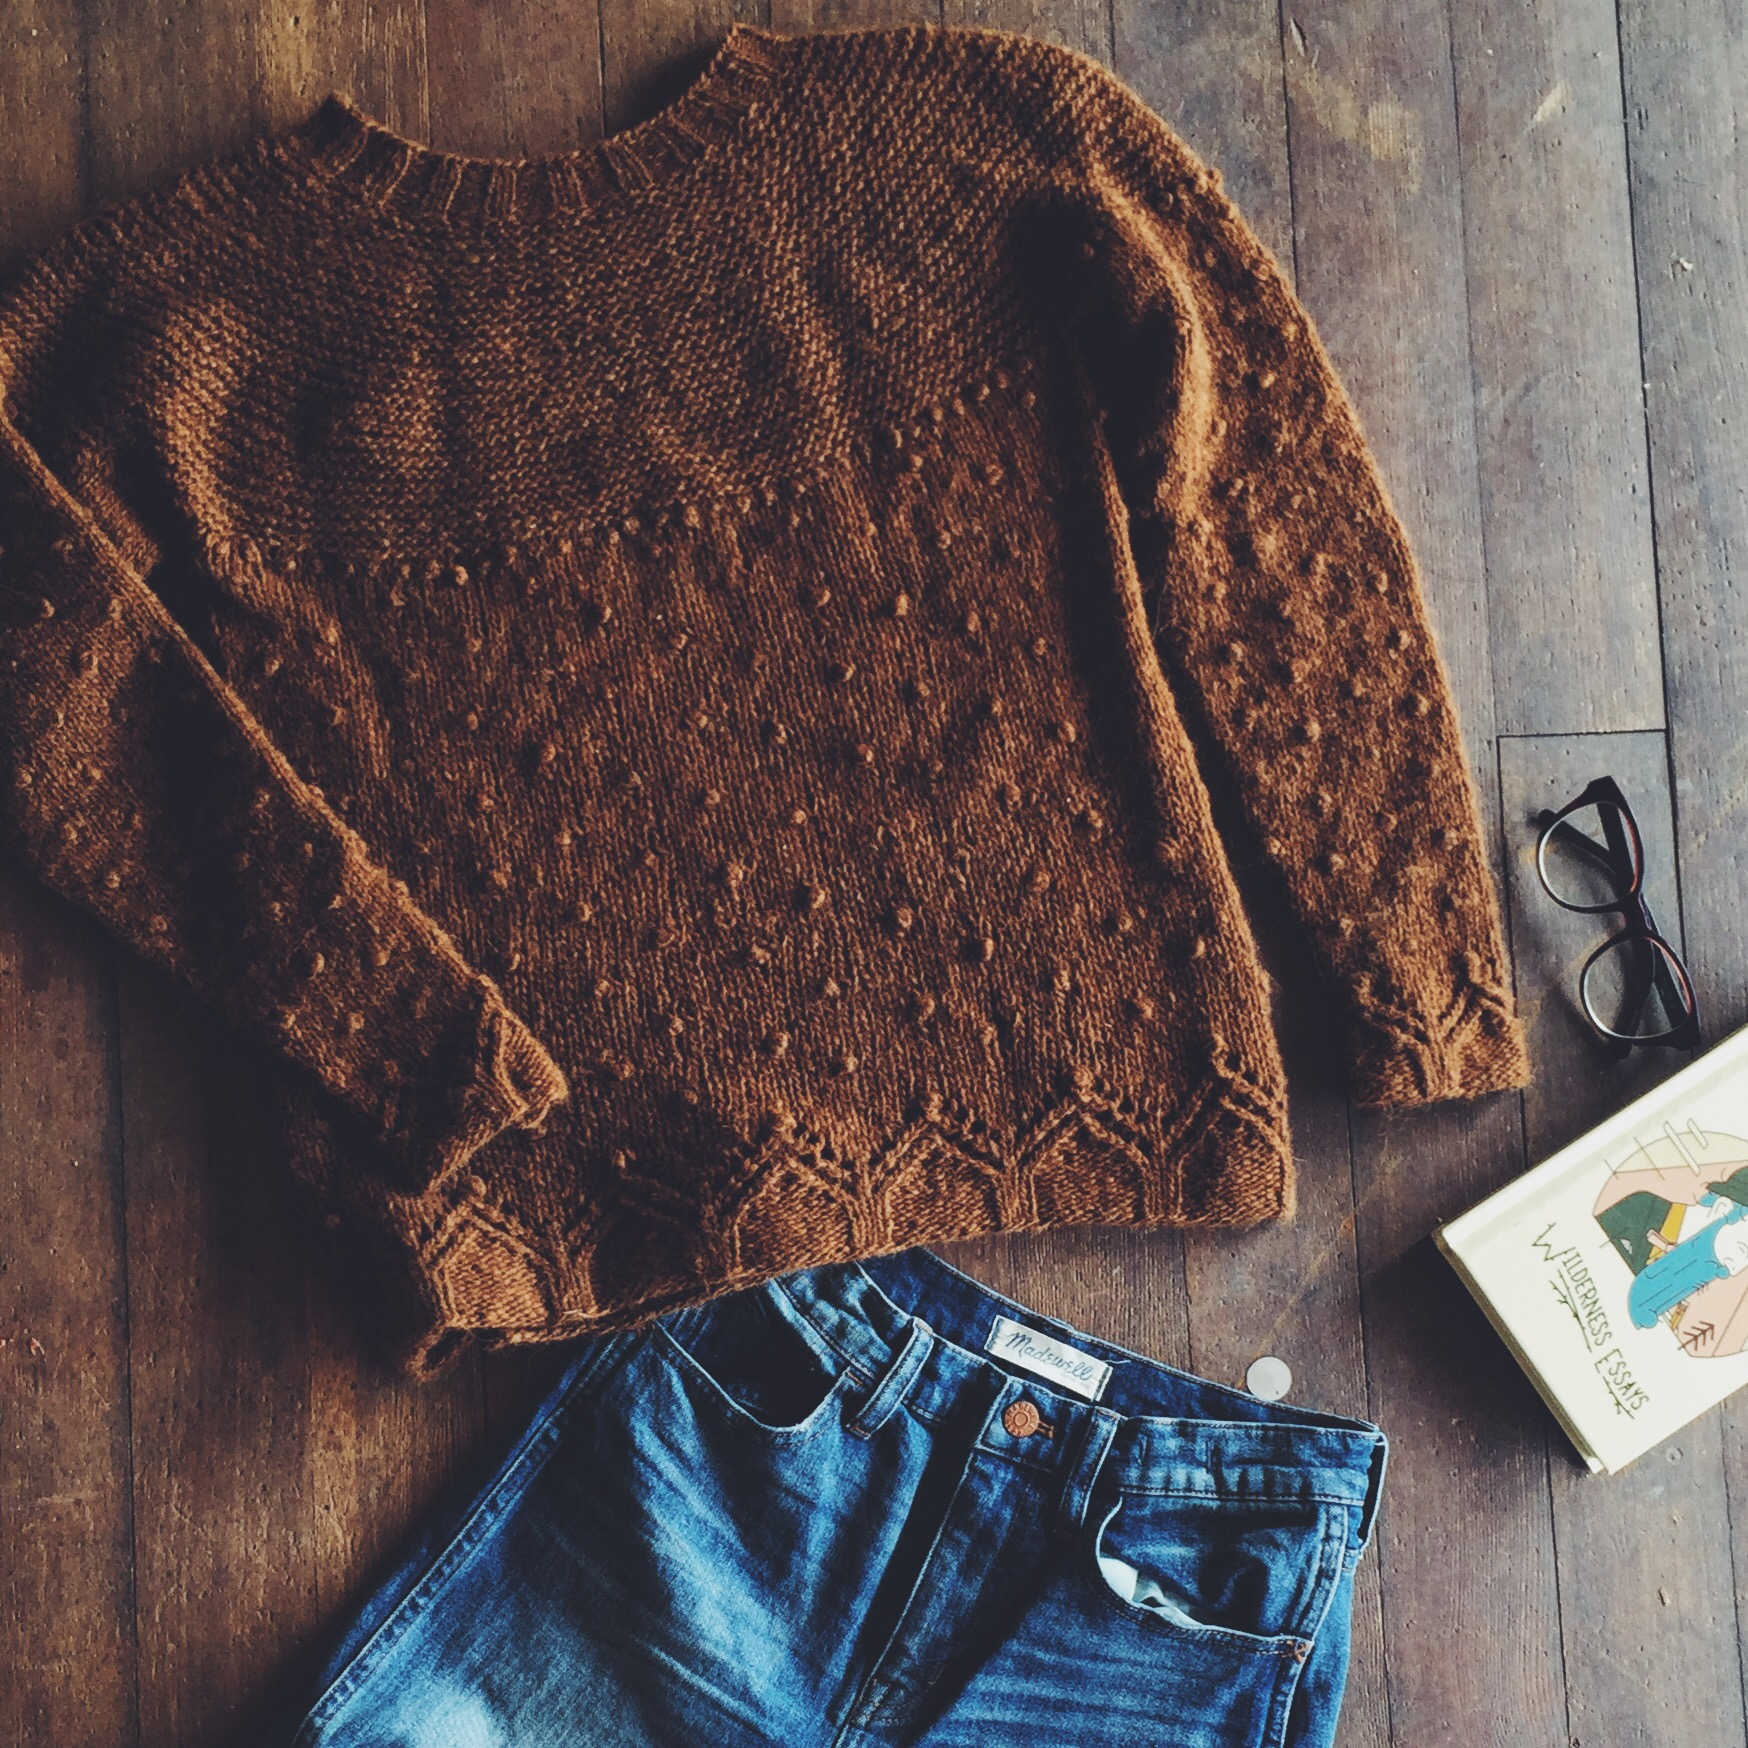 Everything I need for a perfect fall day. Just add coffee.